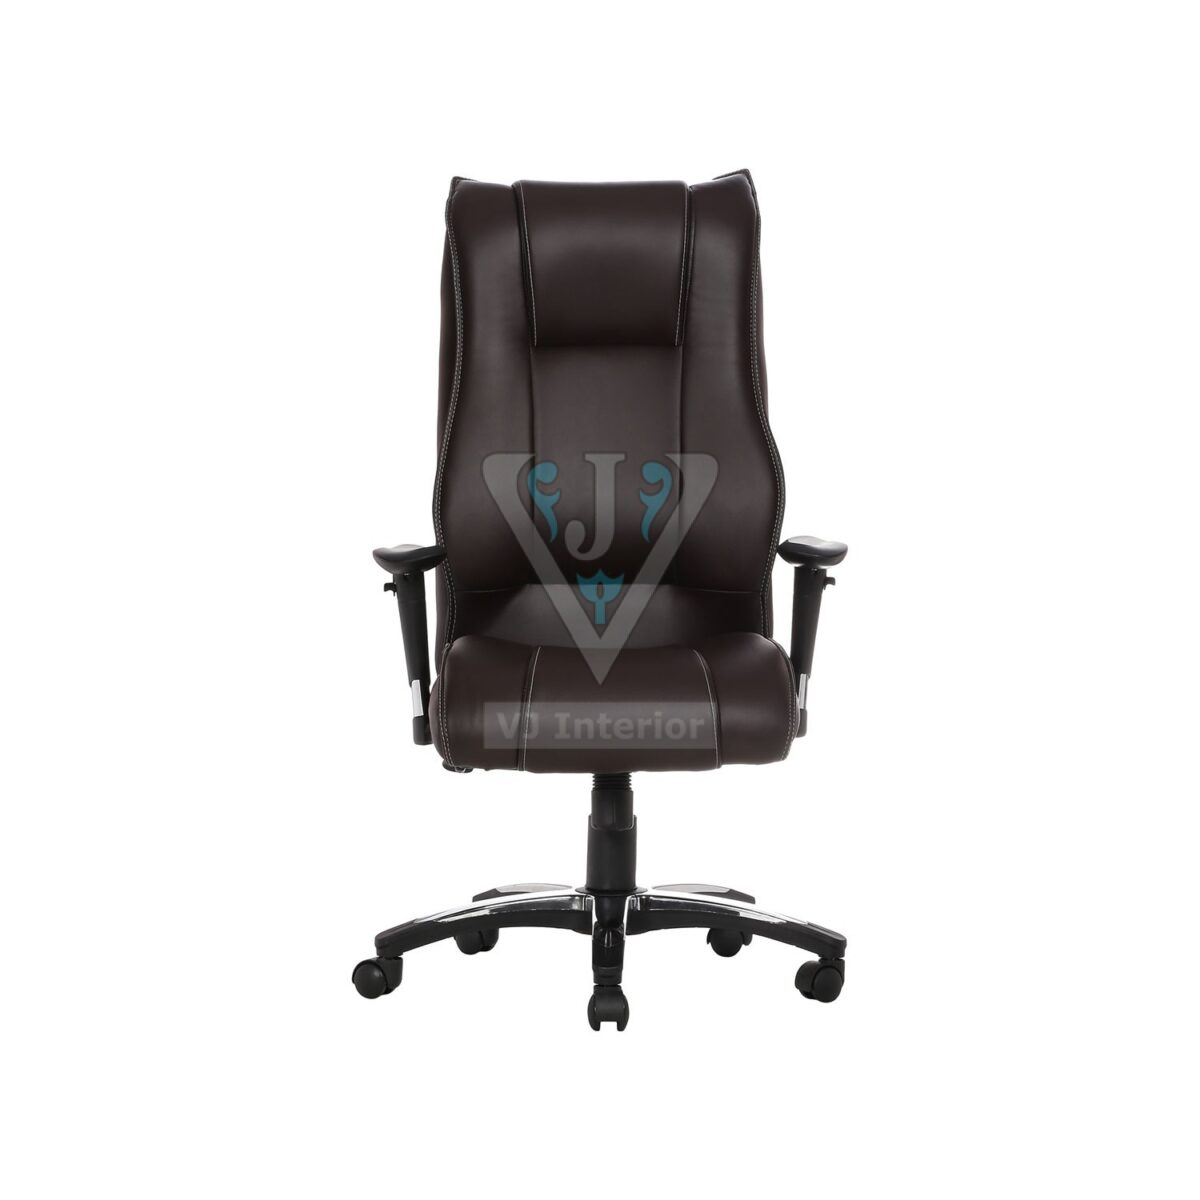 THE DEOREJA HB EXECUTIVE CHAIR BROWN